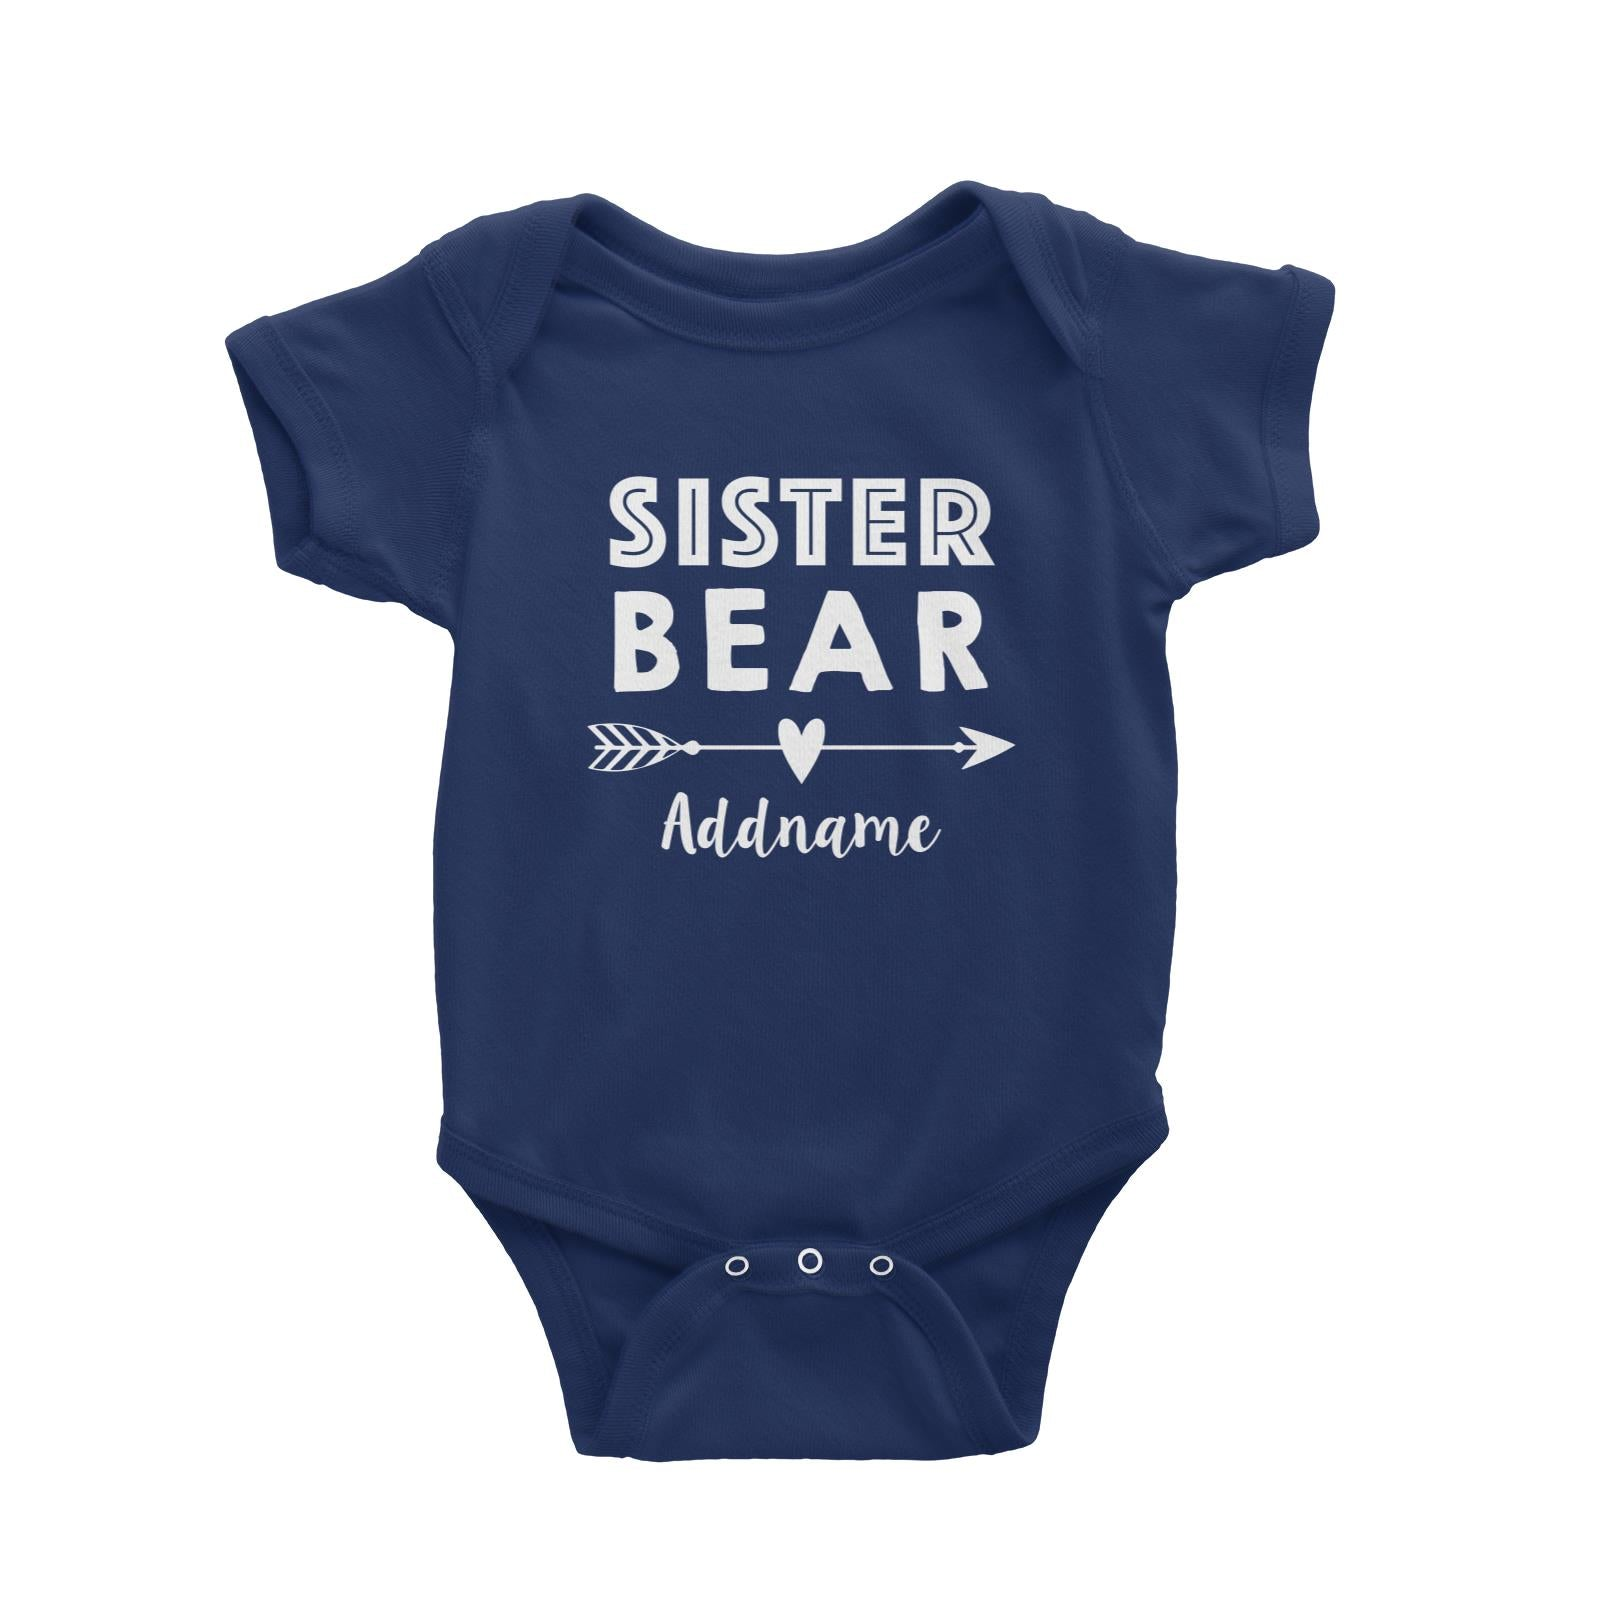 Sister Bear Addname Baby Romper  Matching Family Personalizable Designs